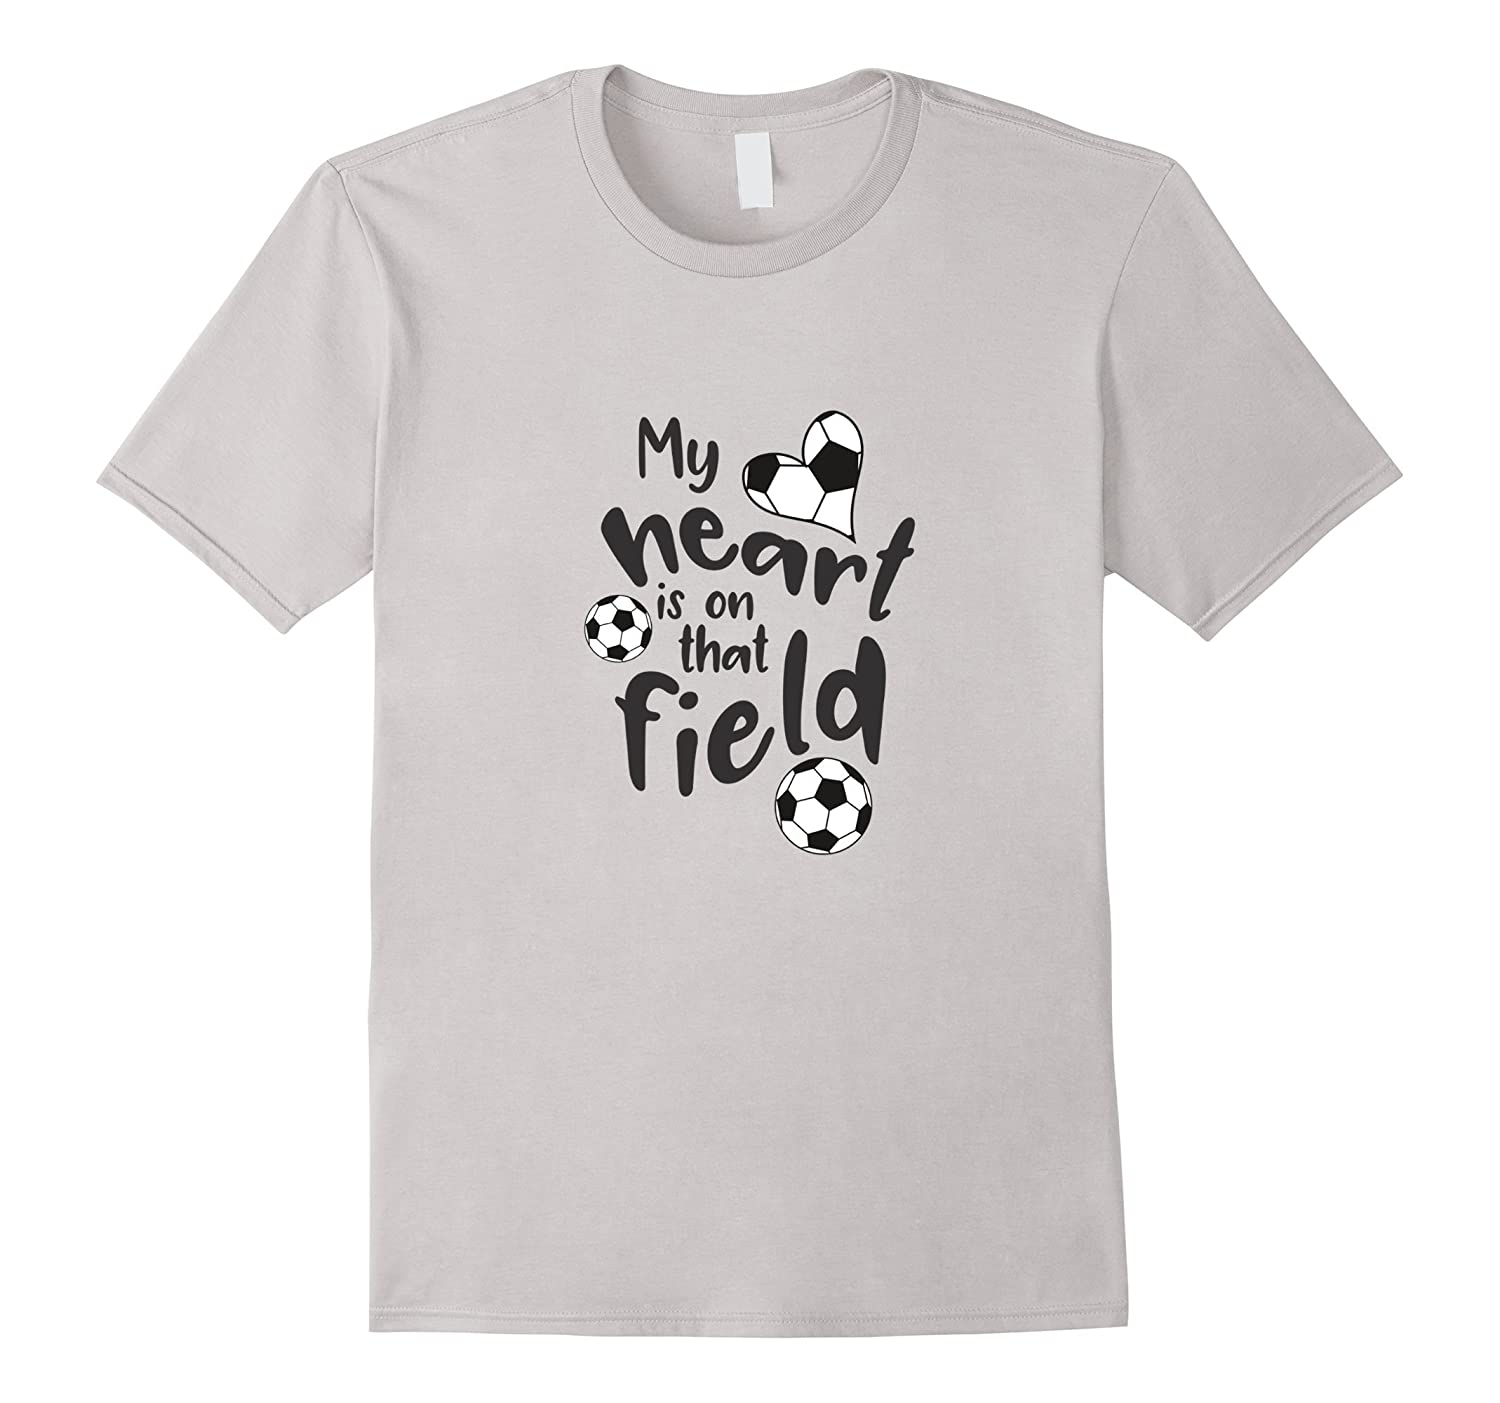 Cute Soccer T-Shirt for Moms and Dads of Soccer Players.-Protee